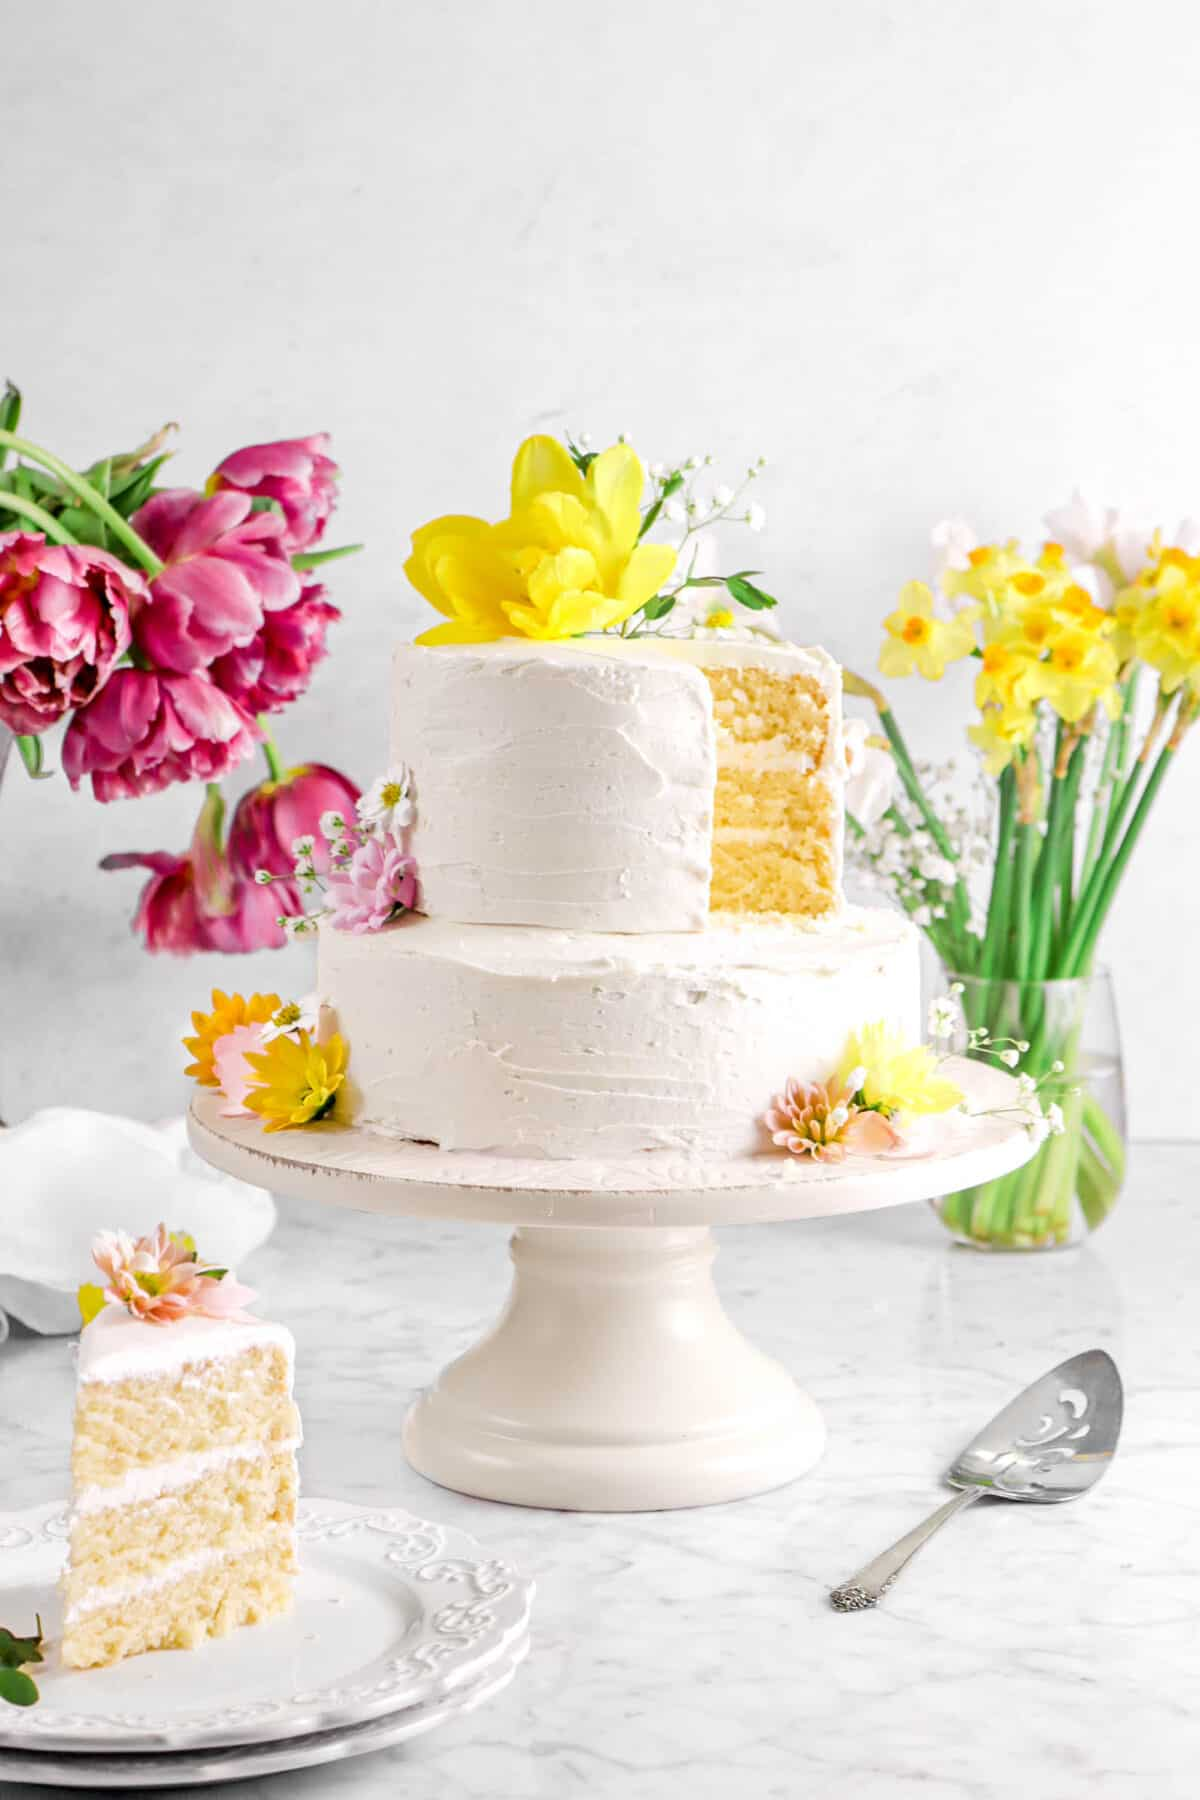 almond cake with a slice on two stacked white plates with flowers behind, a cake knife, and white napkin